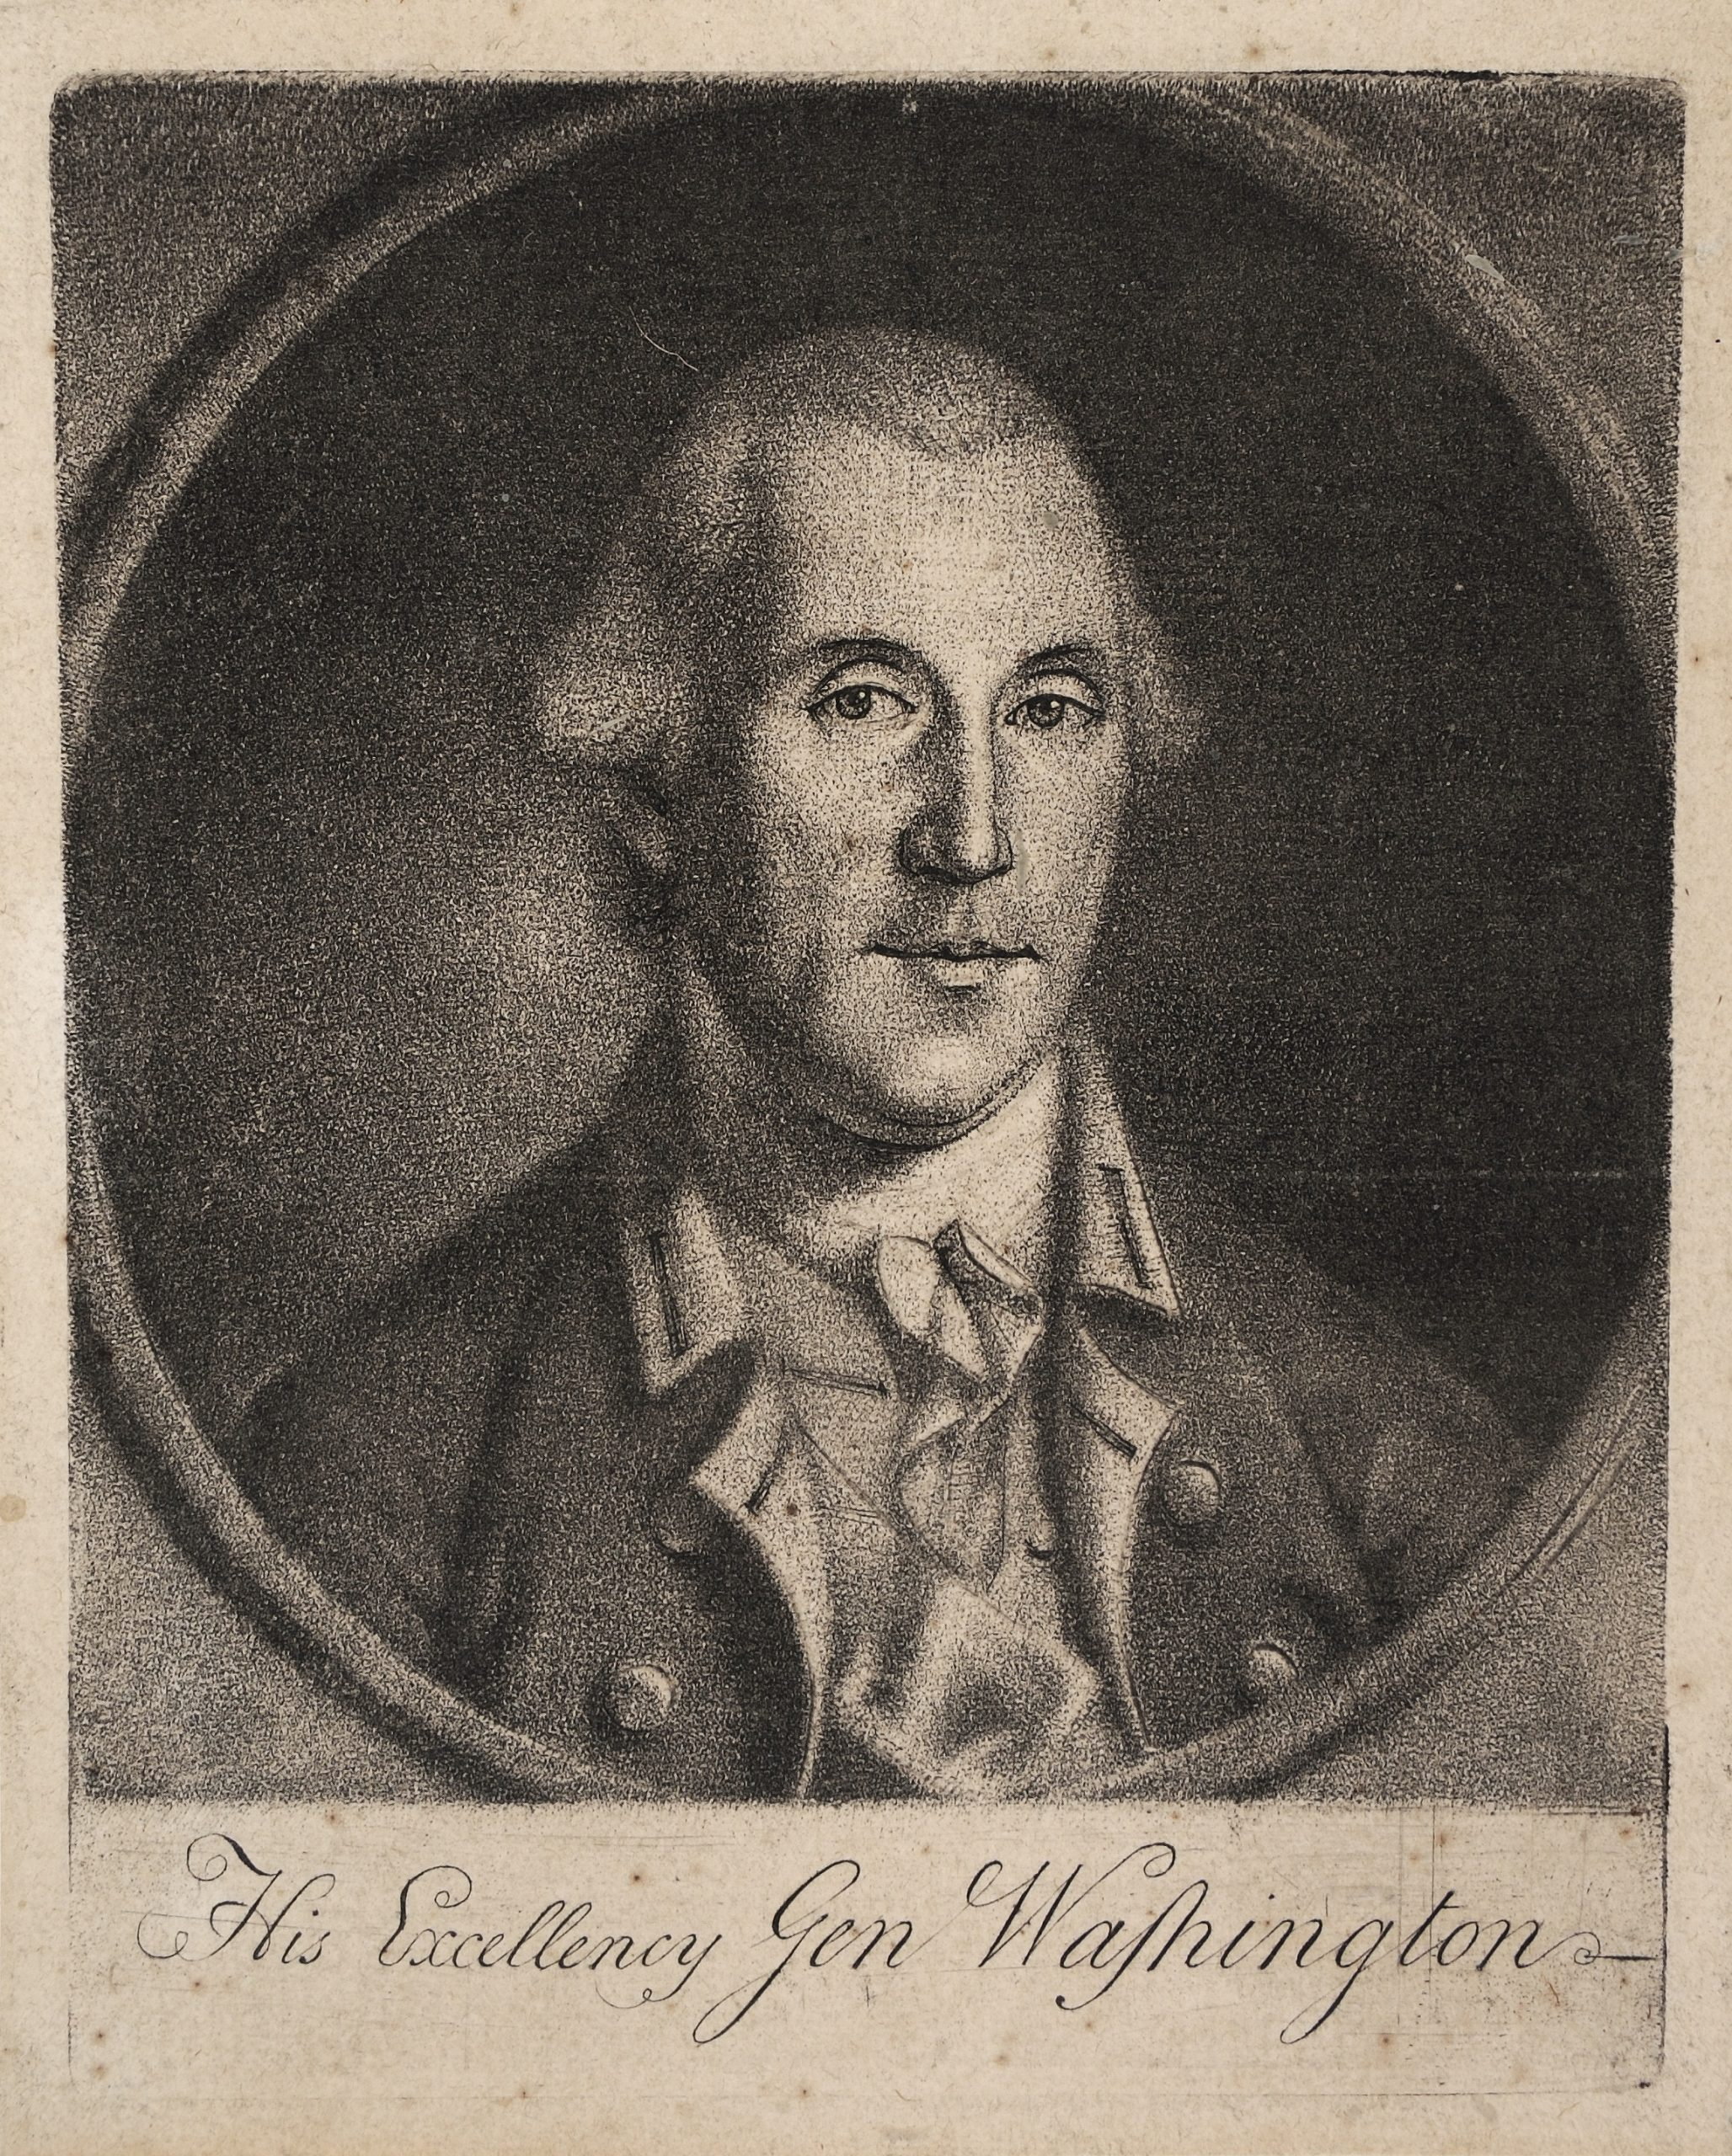 This engraving of George Washington by Charles Willson Peale is one of ten great Revolutionary War prints.